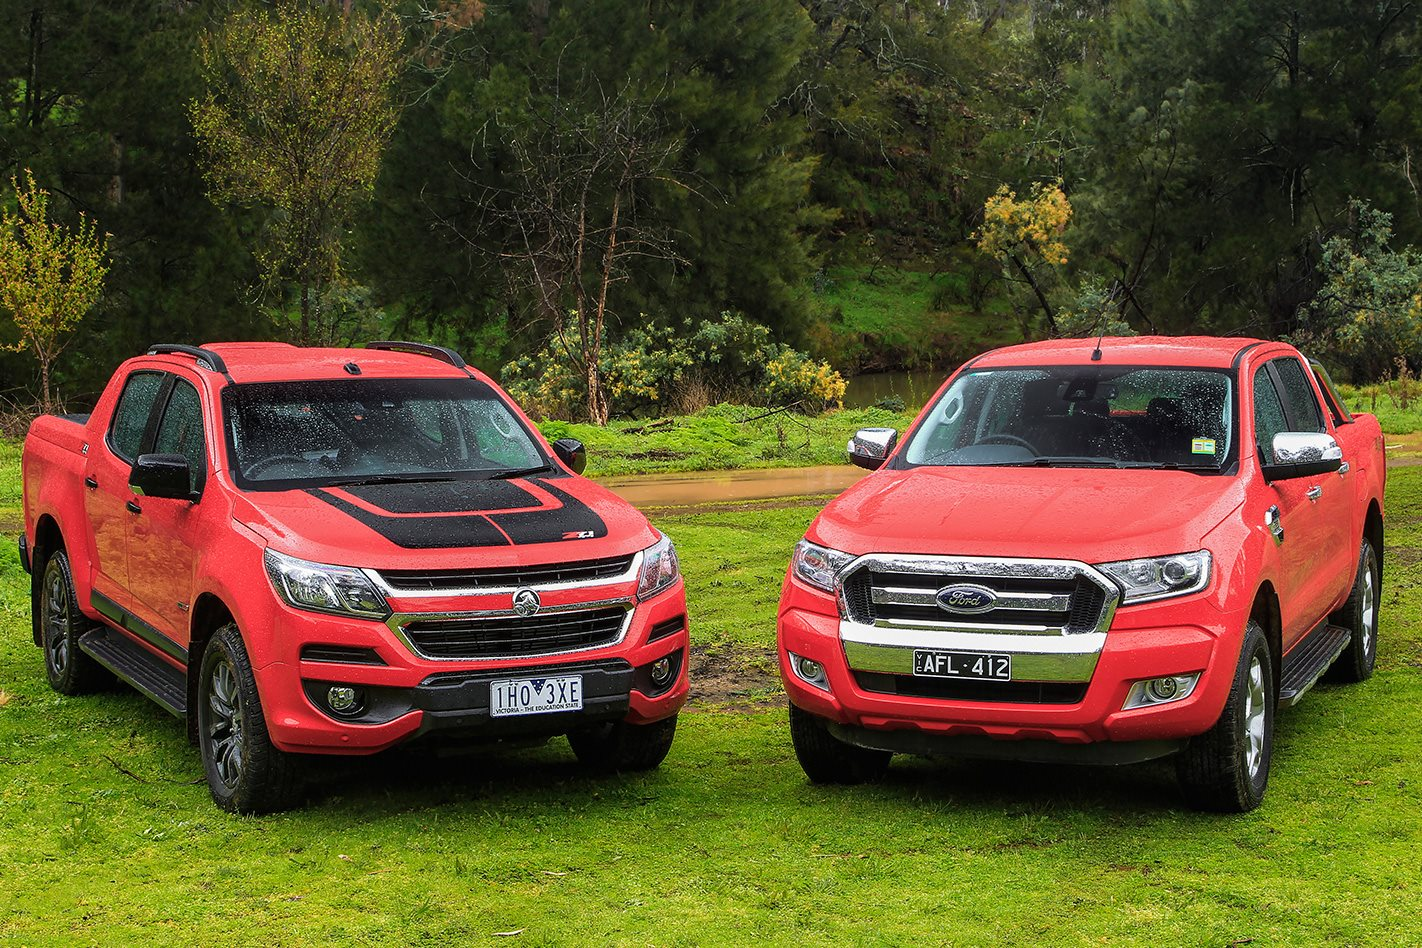 2017 Holden Colorado Z71 vs 2016 Ford Ranger XLT video review | 4X4 Australia